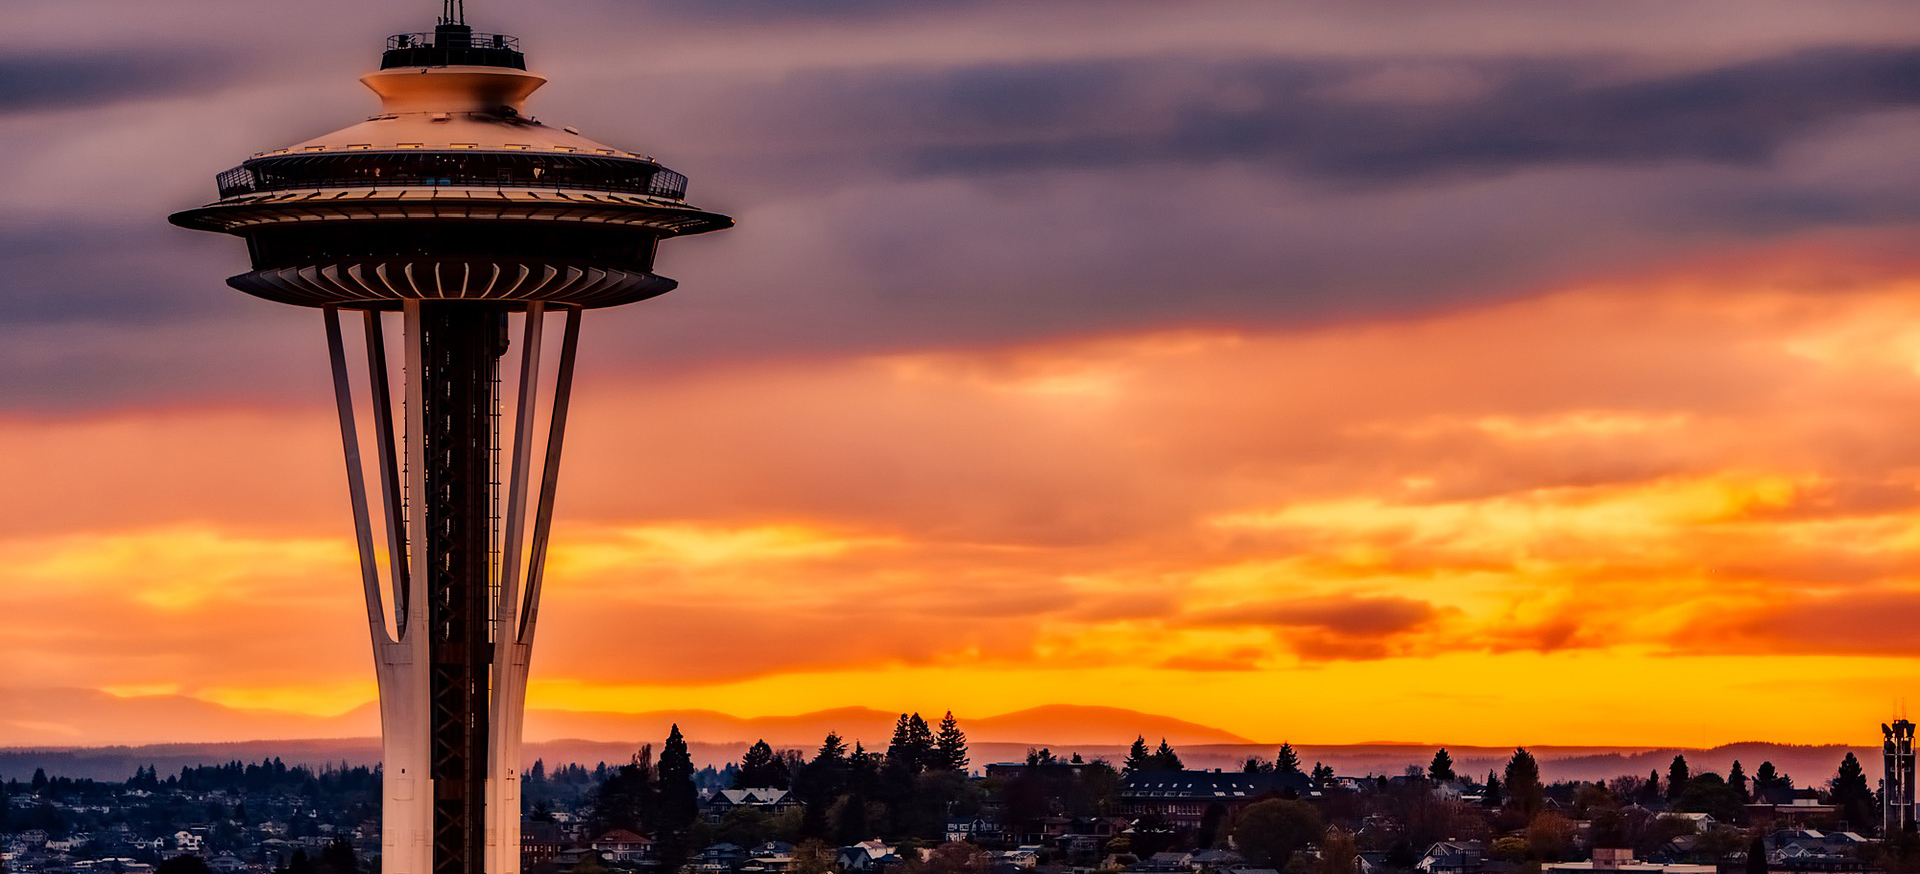 The Space Needle in Seattle Washington | Breast Cancer Car Donations